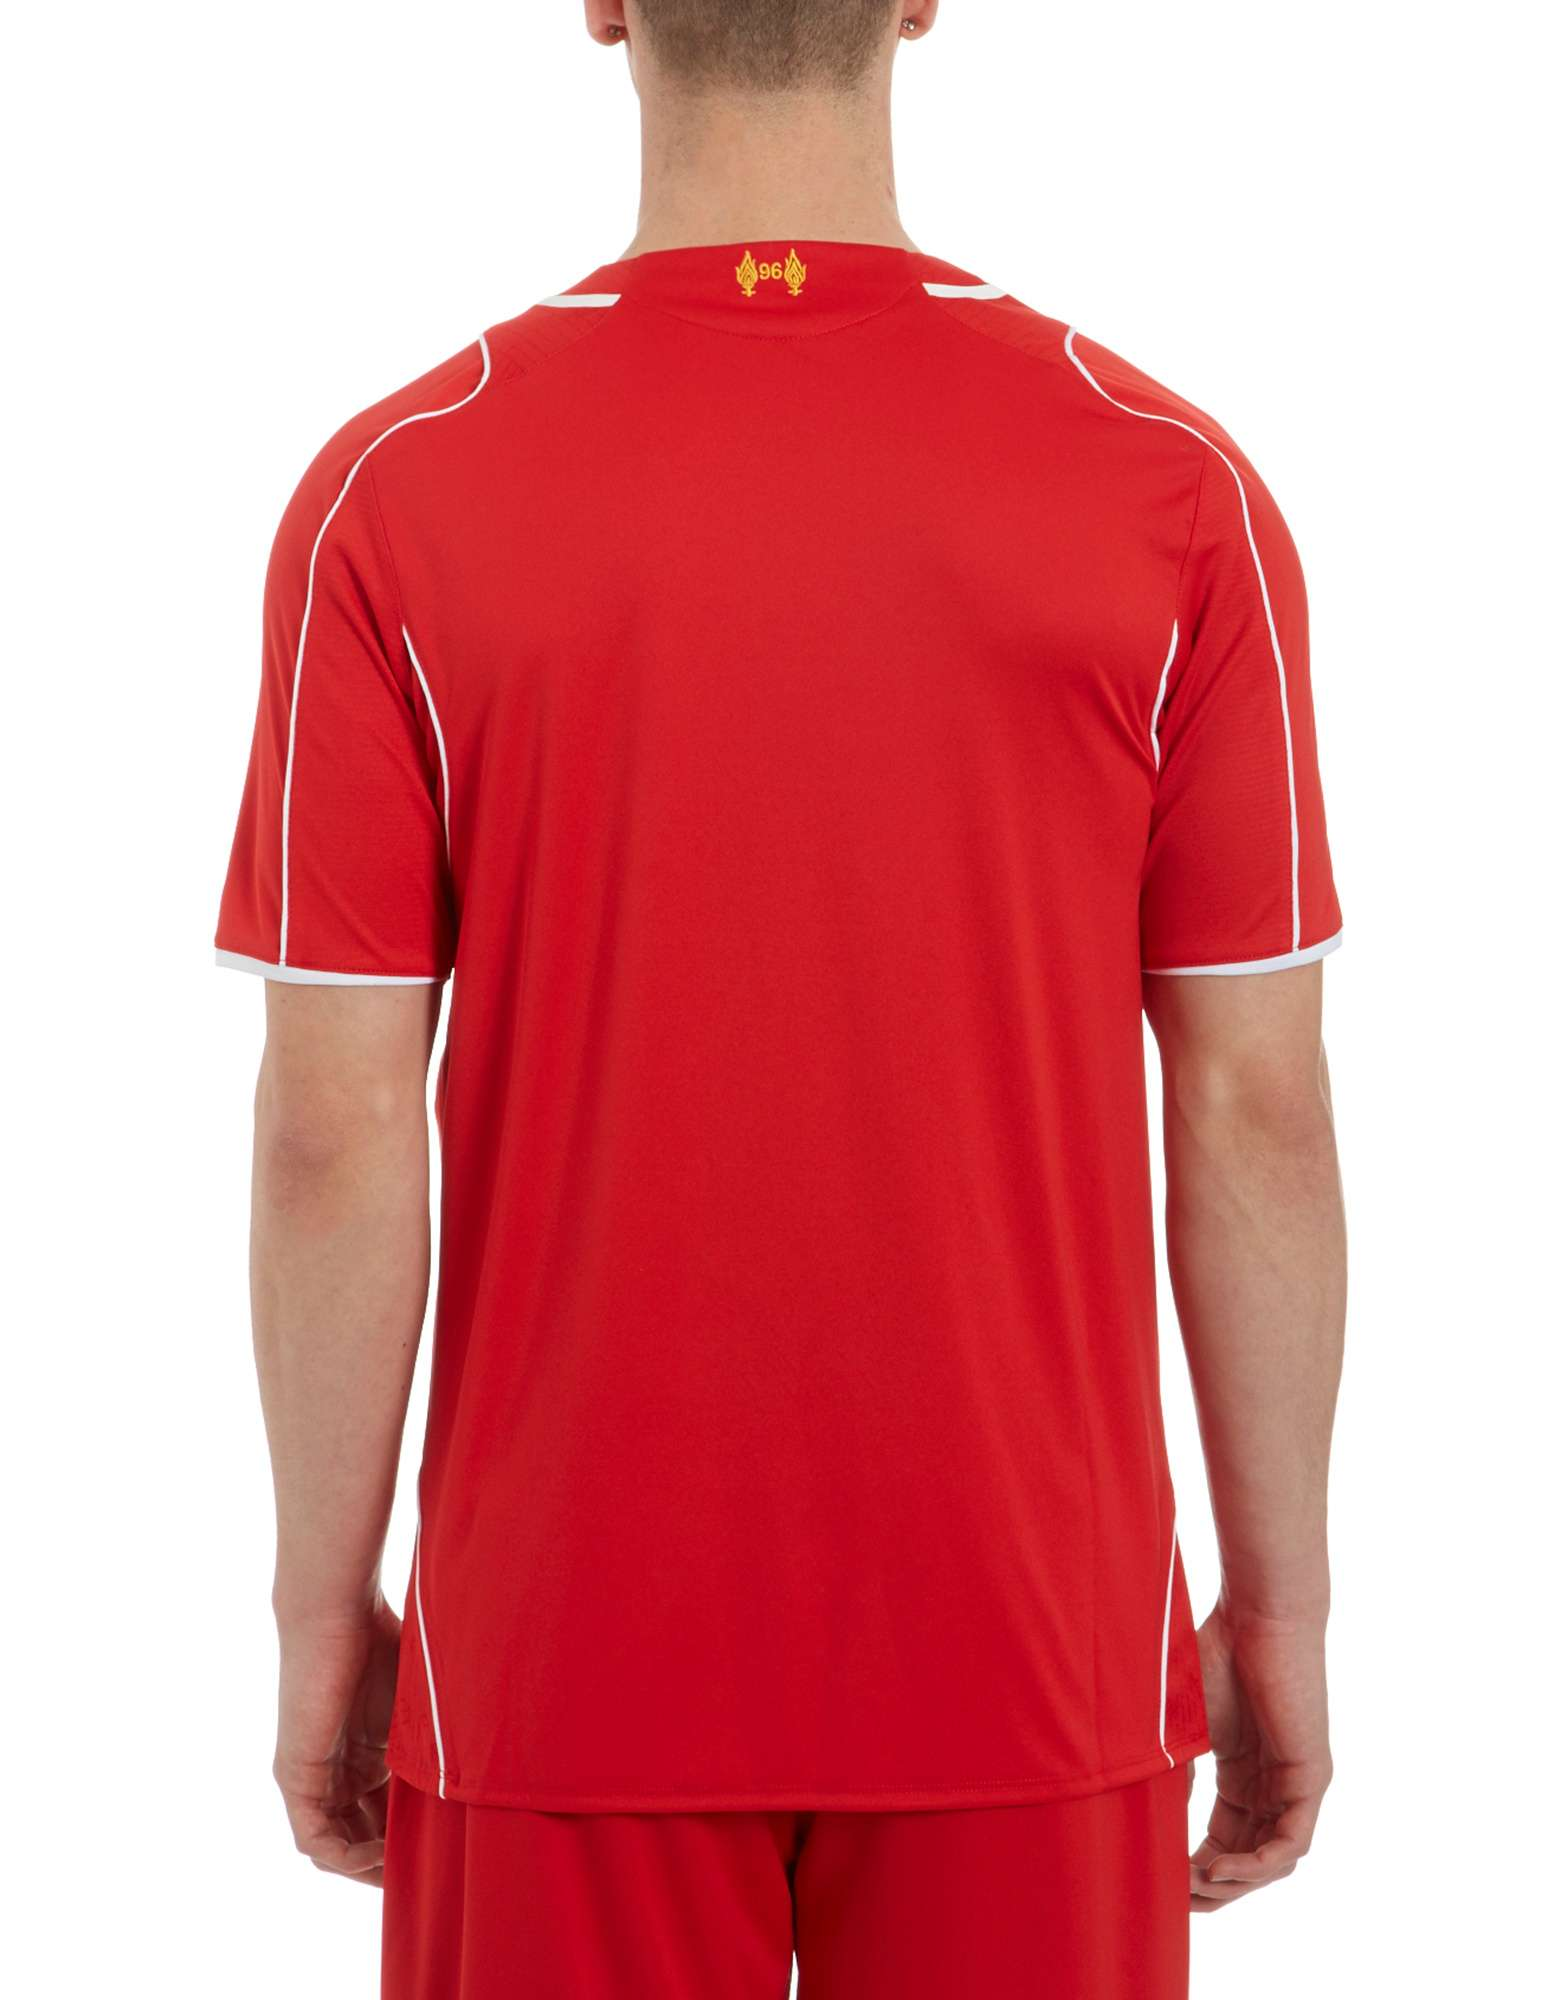 Warrior Sports Liverpool 2014 Home Shirt